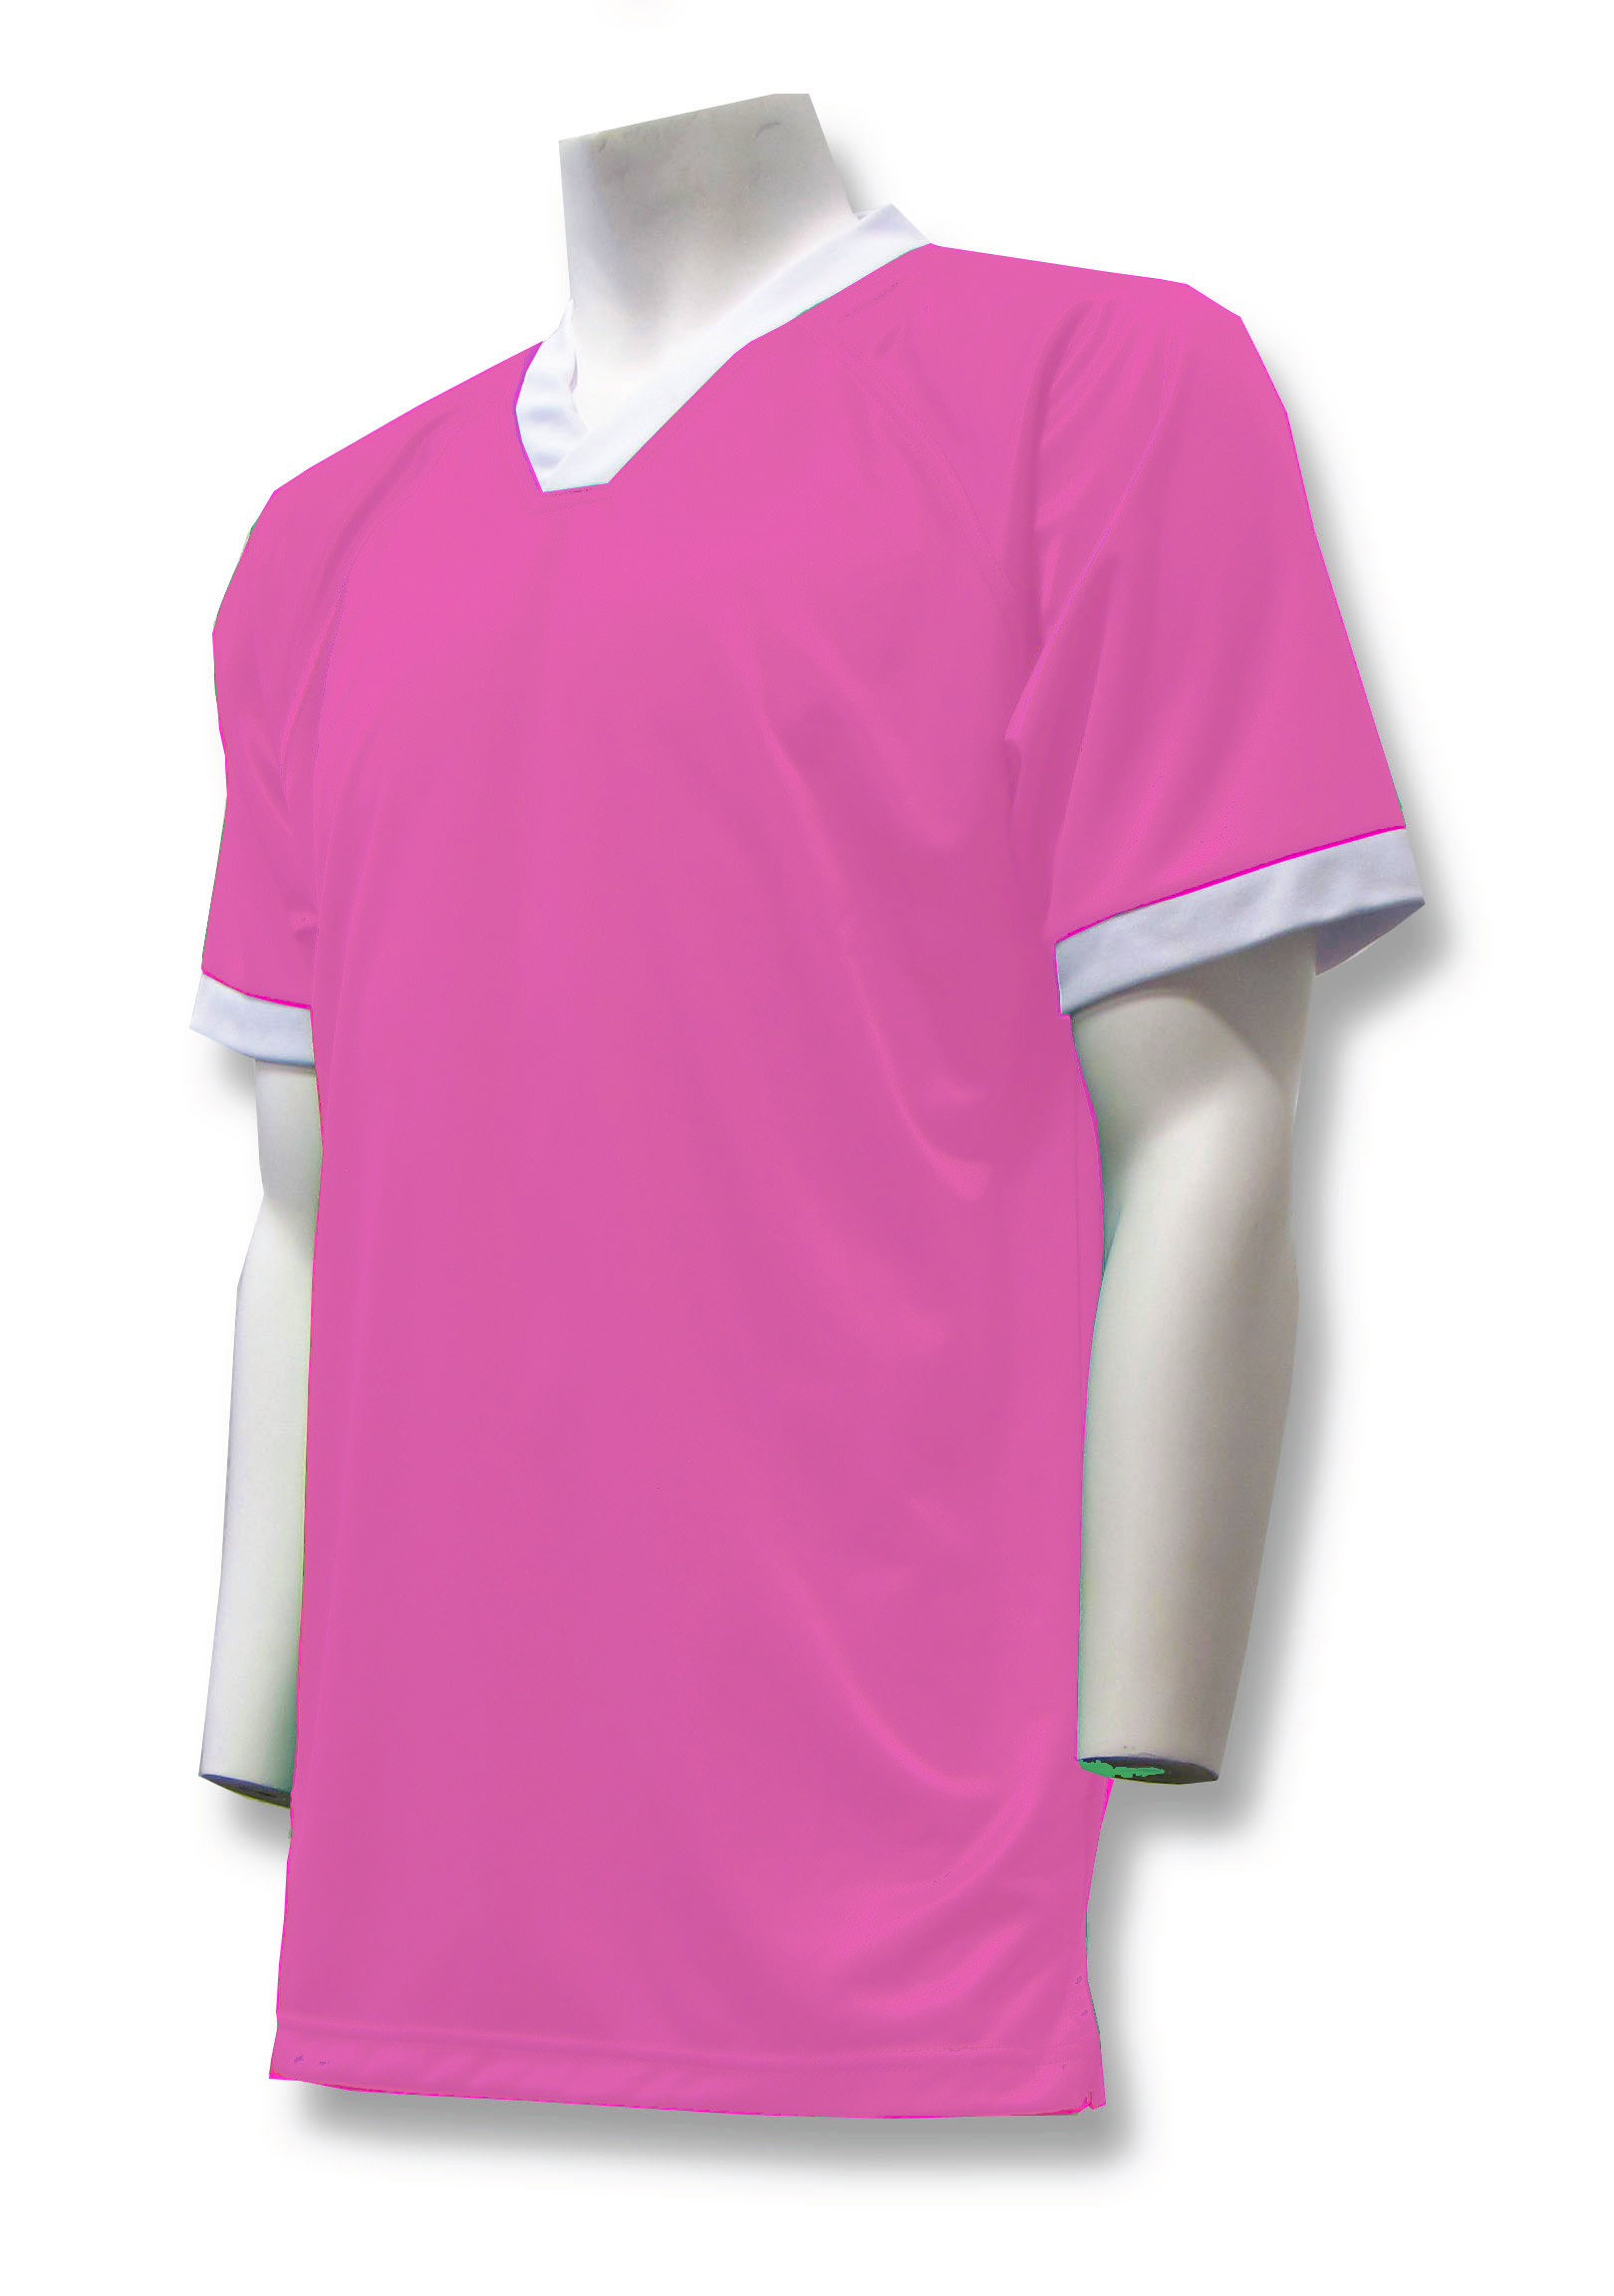 Pioneer soccer jersey in pink by Code Four Athletics